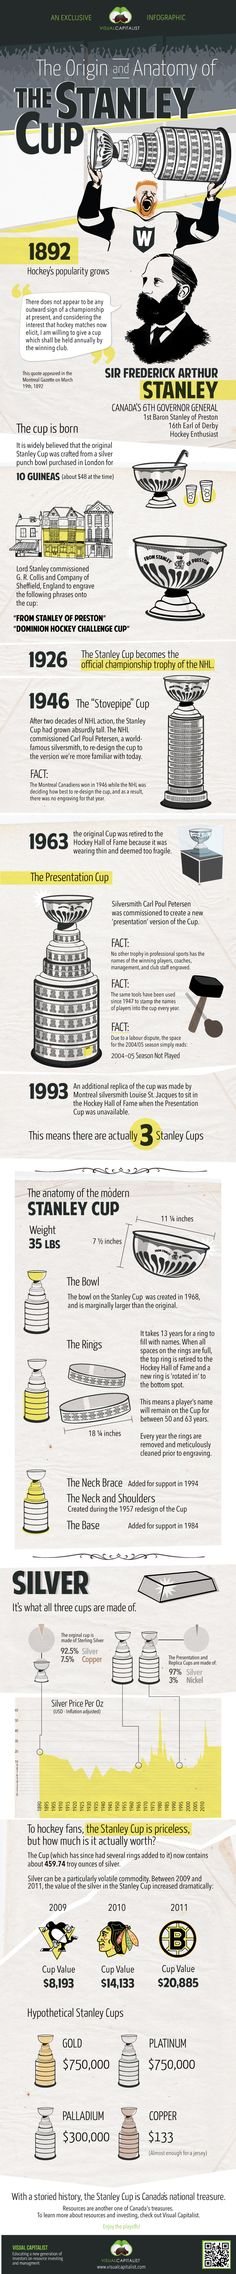 The Origin of the Stanley Cup | Always a good reminder of what teams are fighting for this time of year.